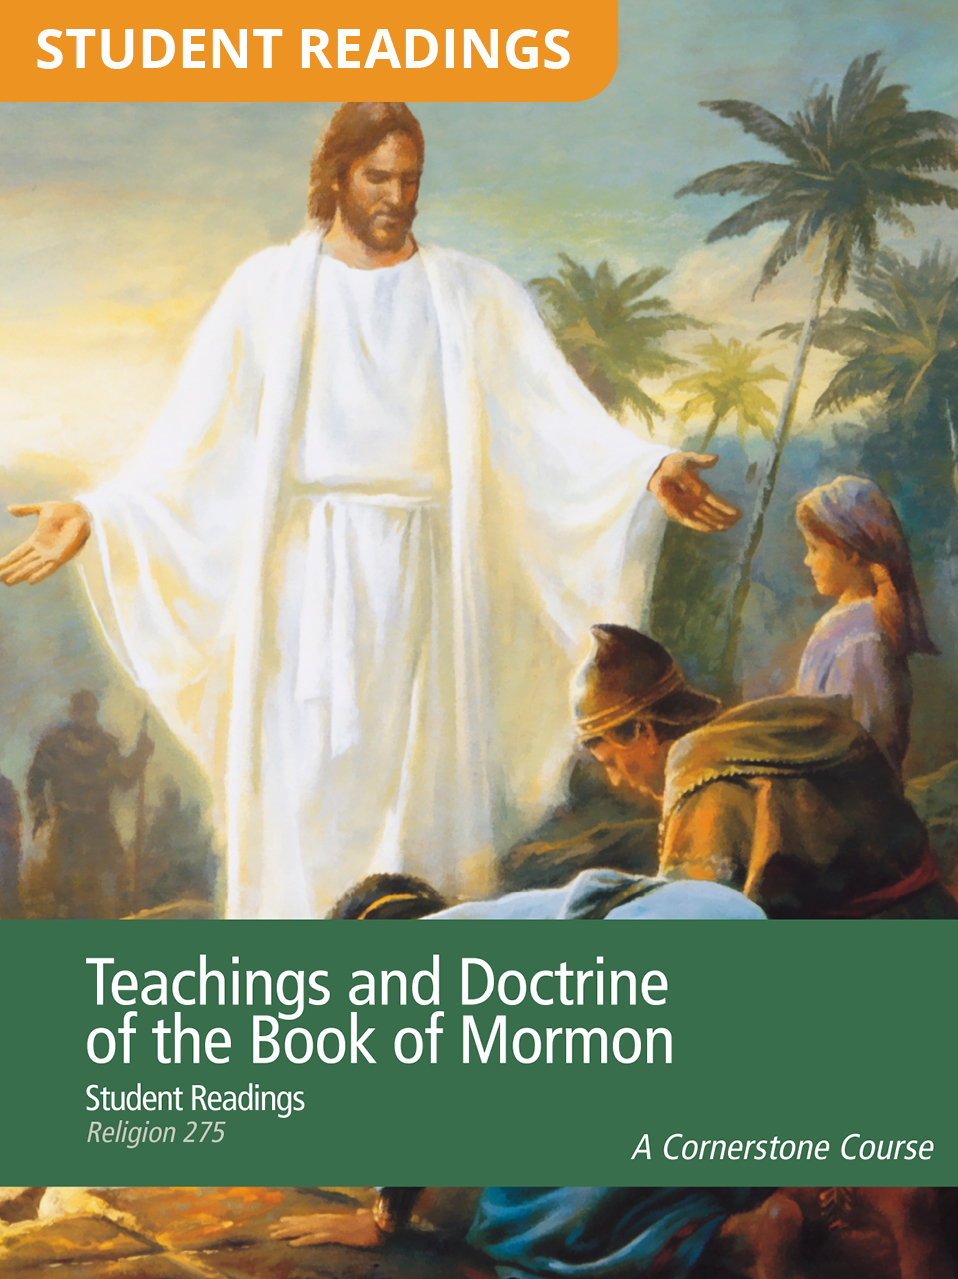 Teachings and Doctrine of the Book of Mormon Student Readings (Rel 275)